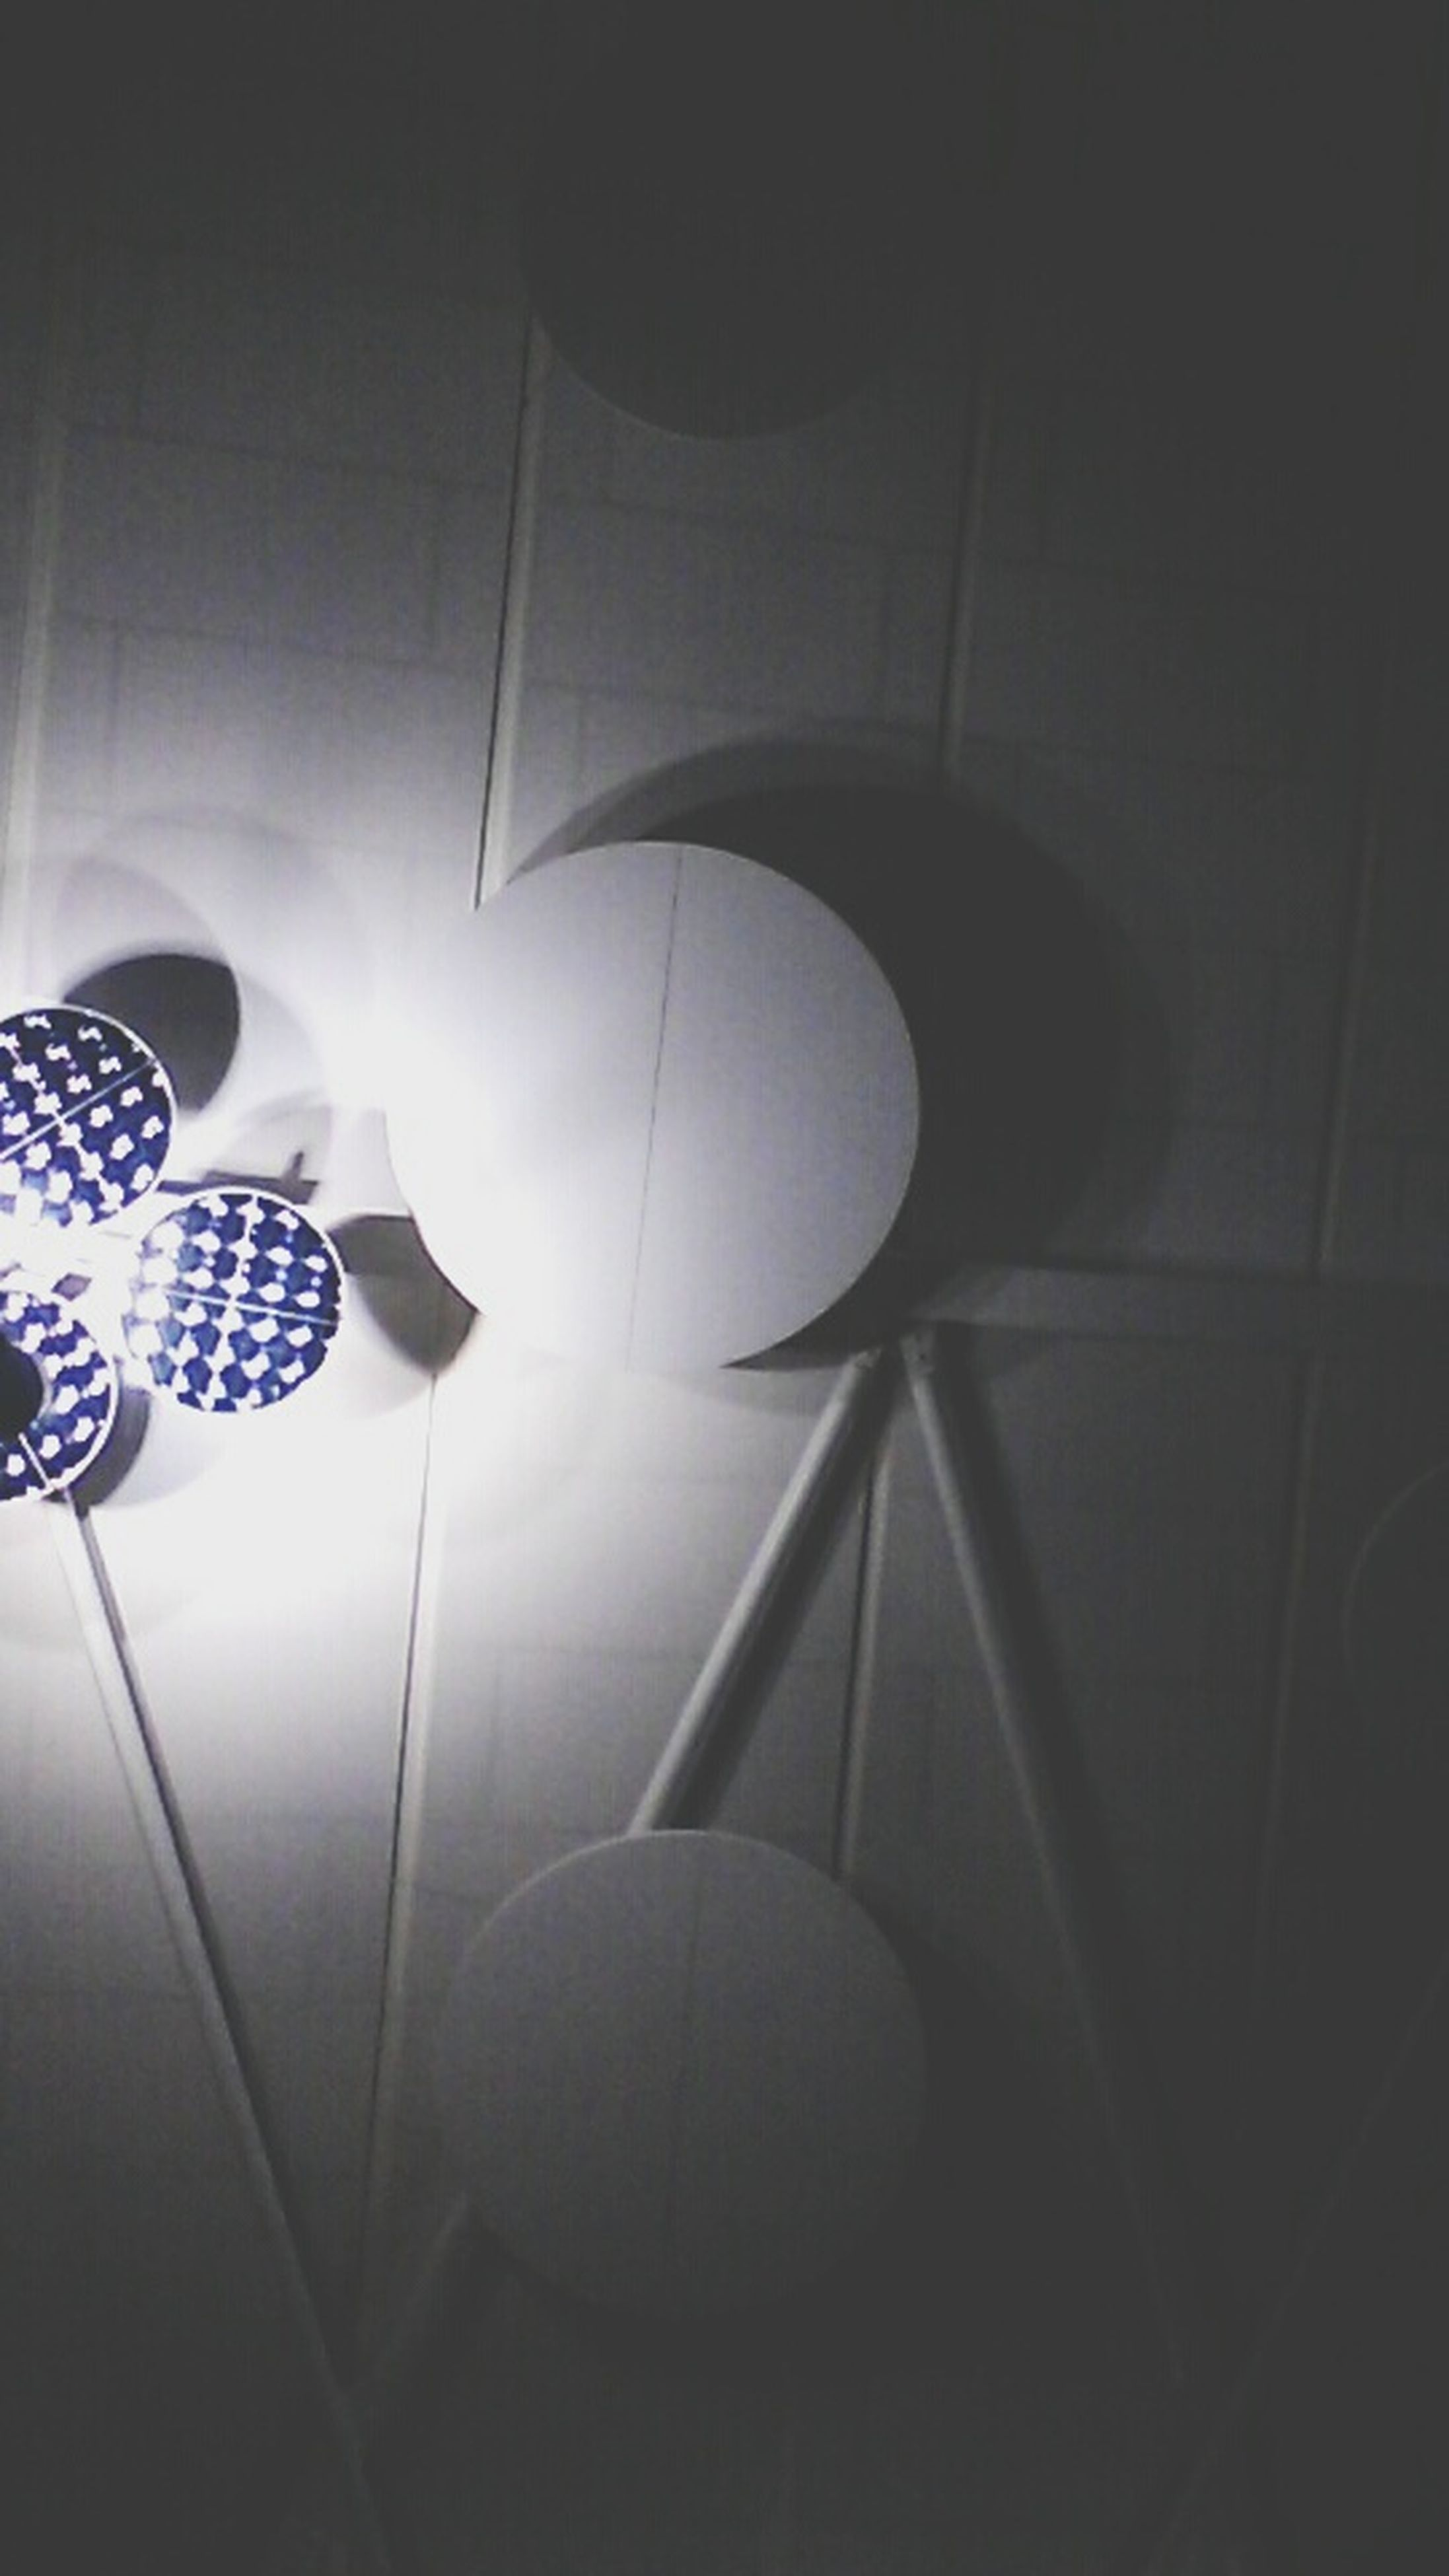 indoors, illuminated, lighting equipment, ceiling, wall - building feature, electricity, light - natural phenomenon, home interior, electric lamp, low angle view, hanging, electric light, no people, decoration, pattern, built structure, design, lamp, architecture, glowing